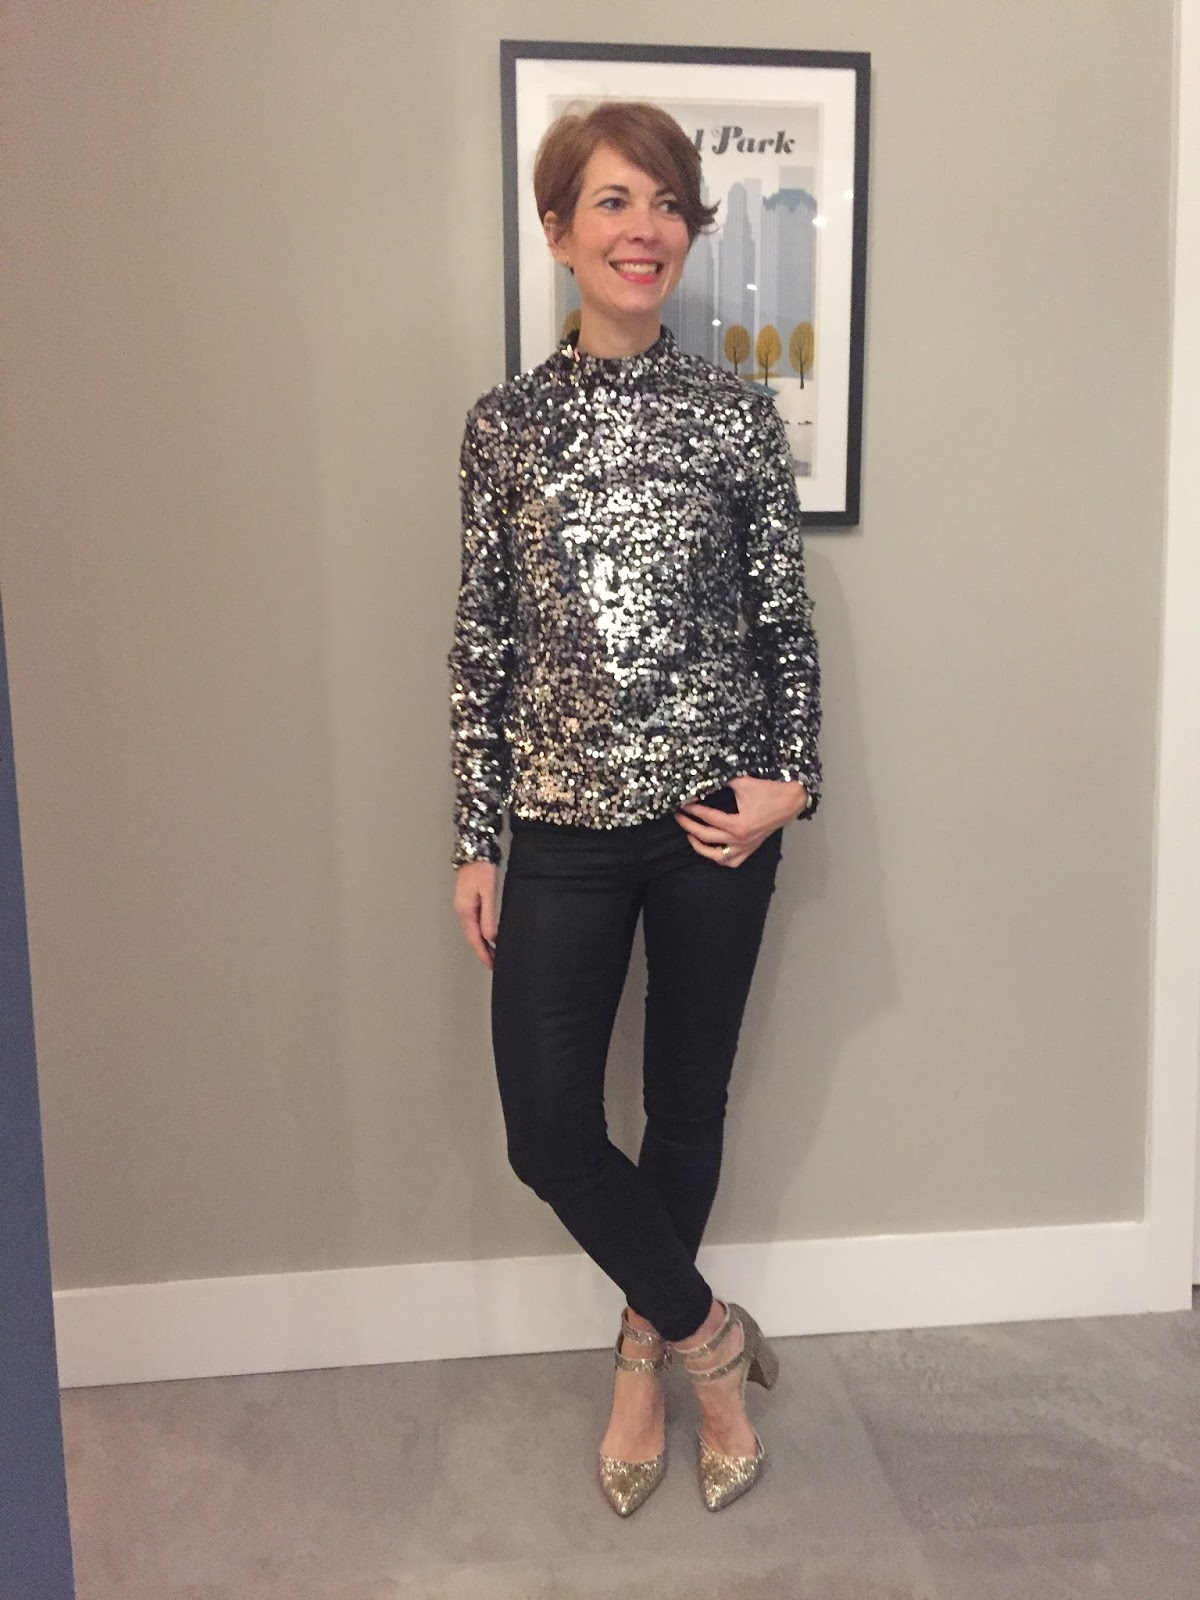 It's the sequinned top post!